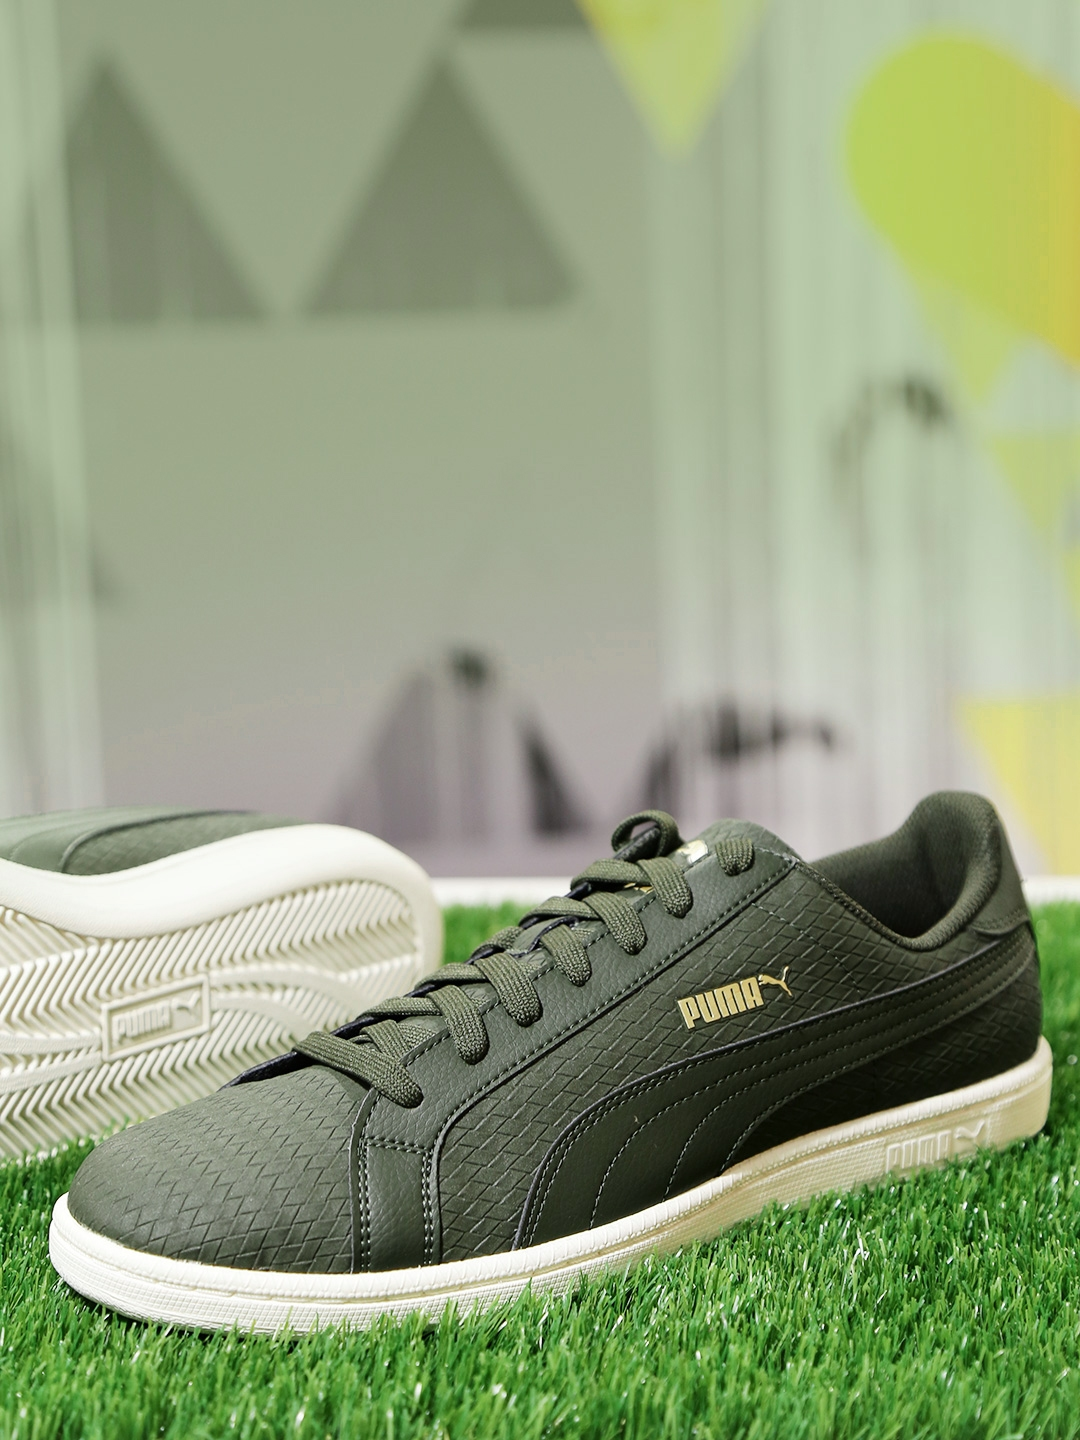 Buy Puma Unisex Olive Green Smash Woven Sneakers - Casual Shoes for ... 47f67629b